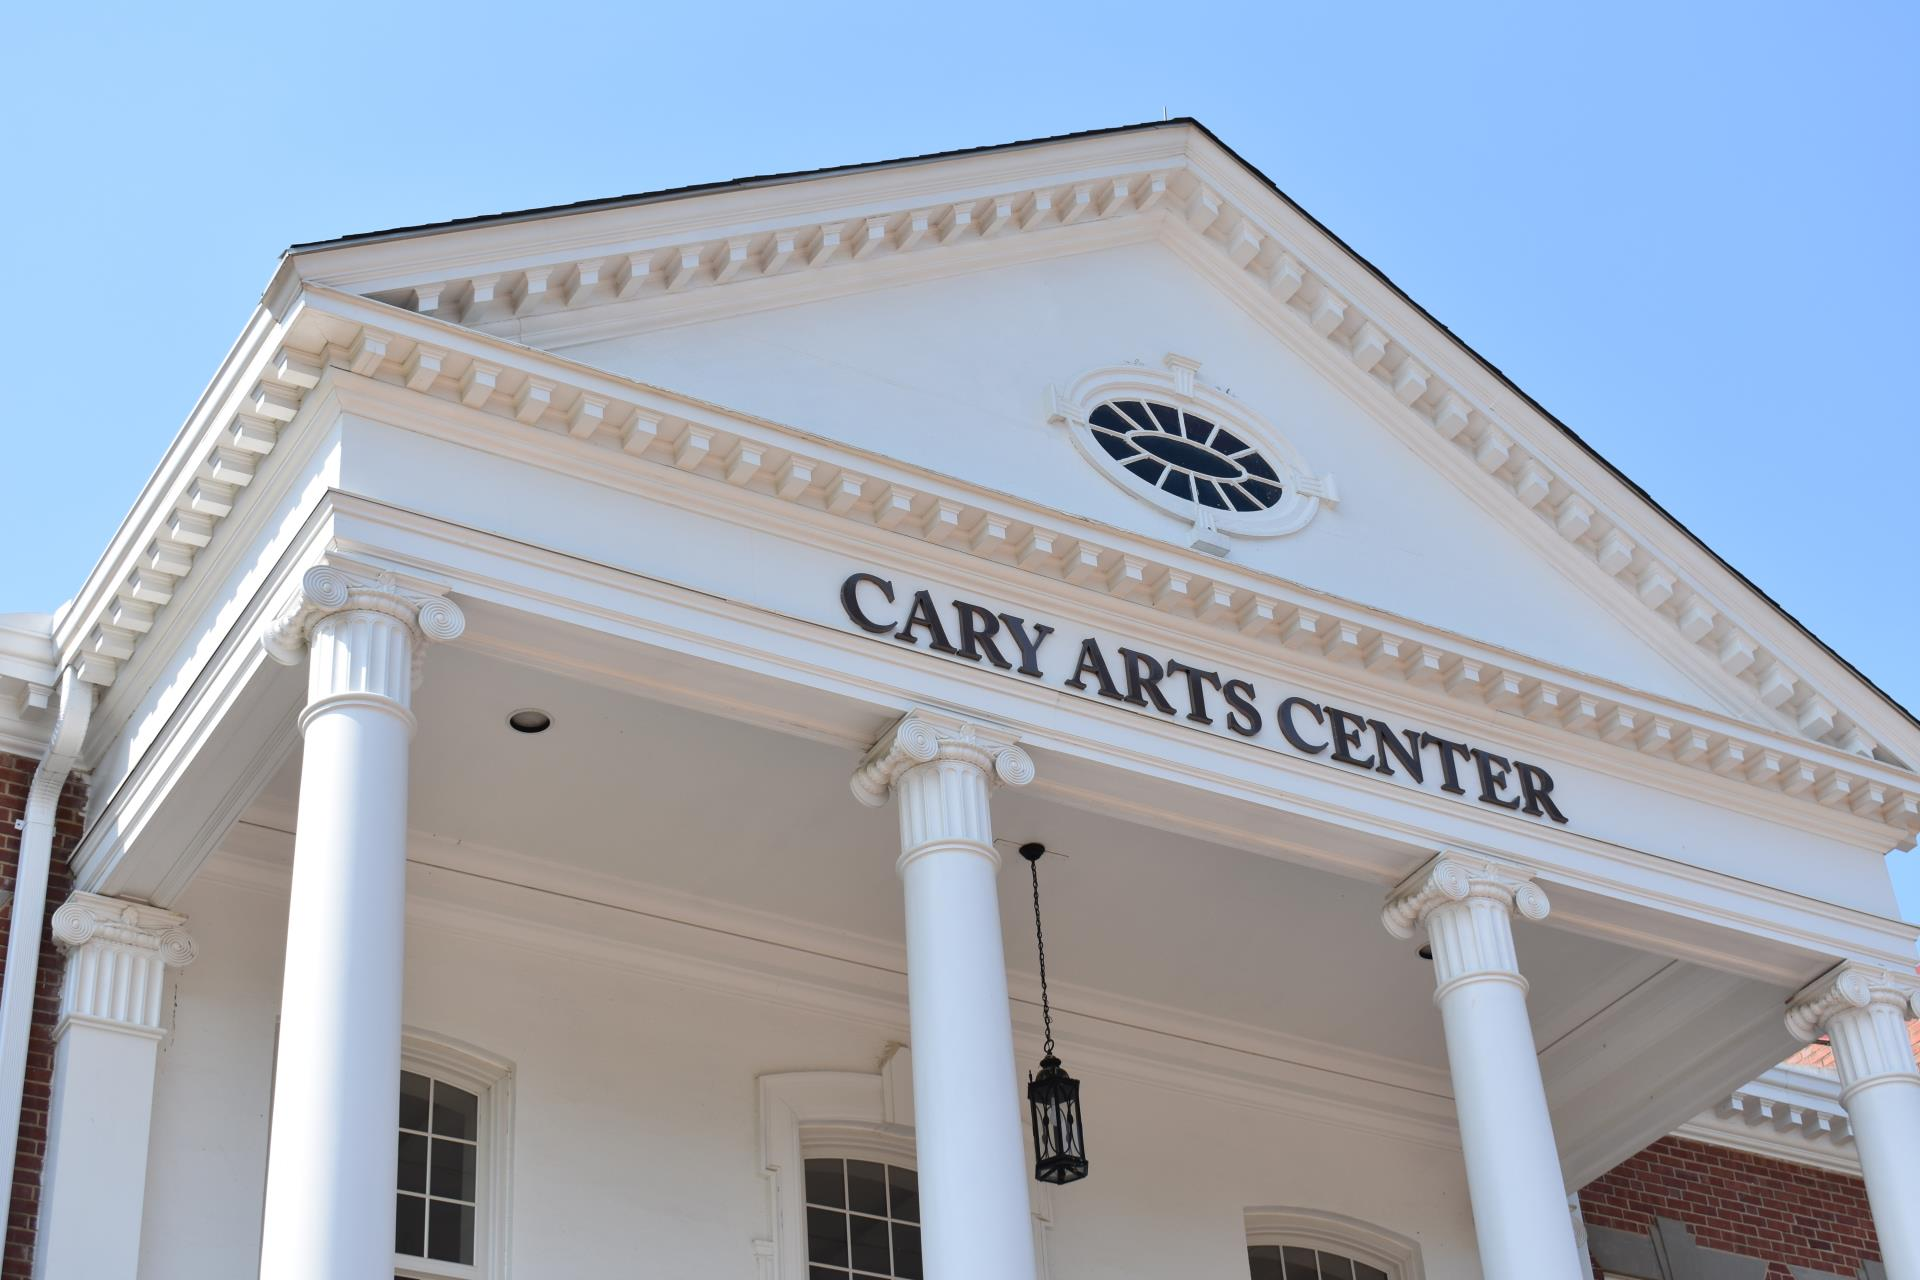 Cary Arts Center